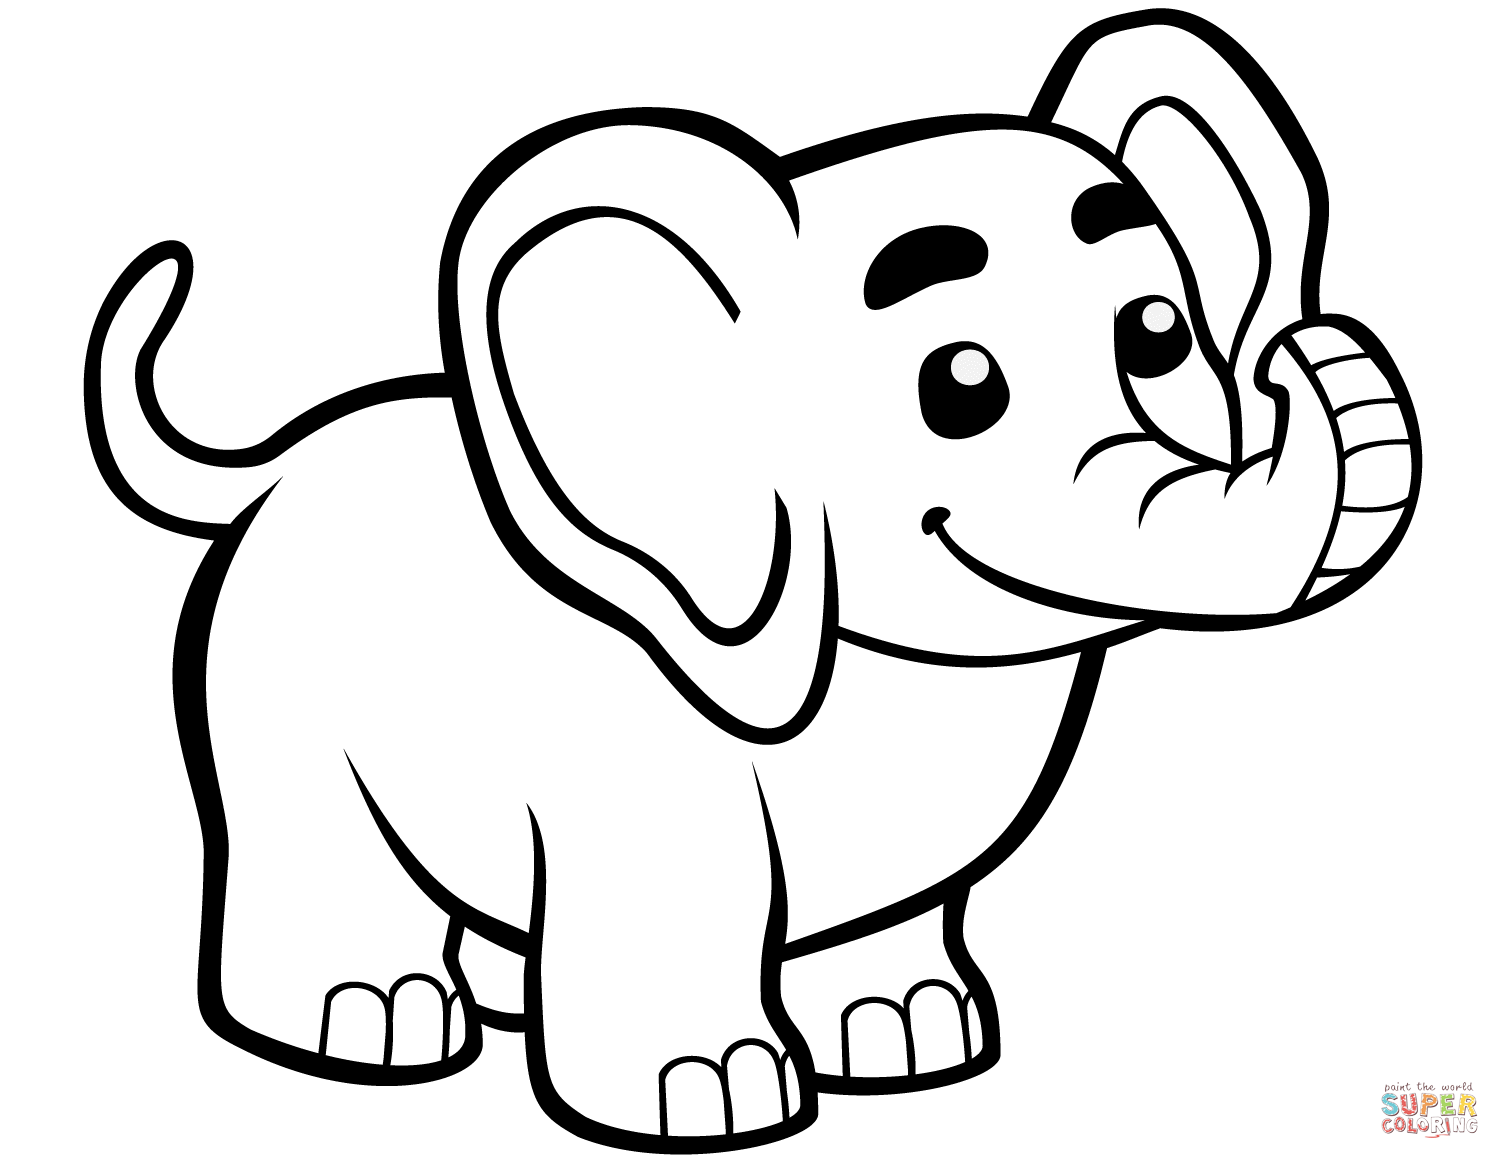 colouring picture of elephant elephant coloring book pages get coloring pages of elephant picture colouring